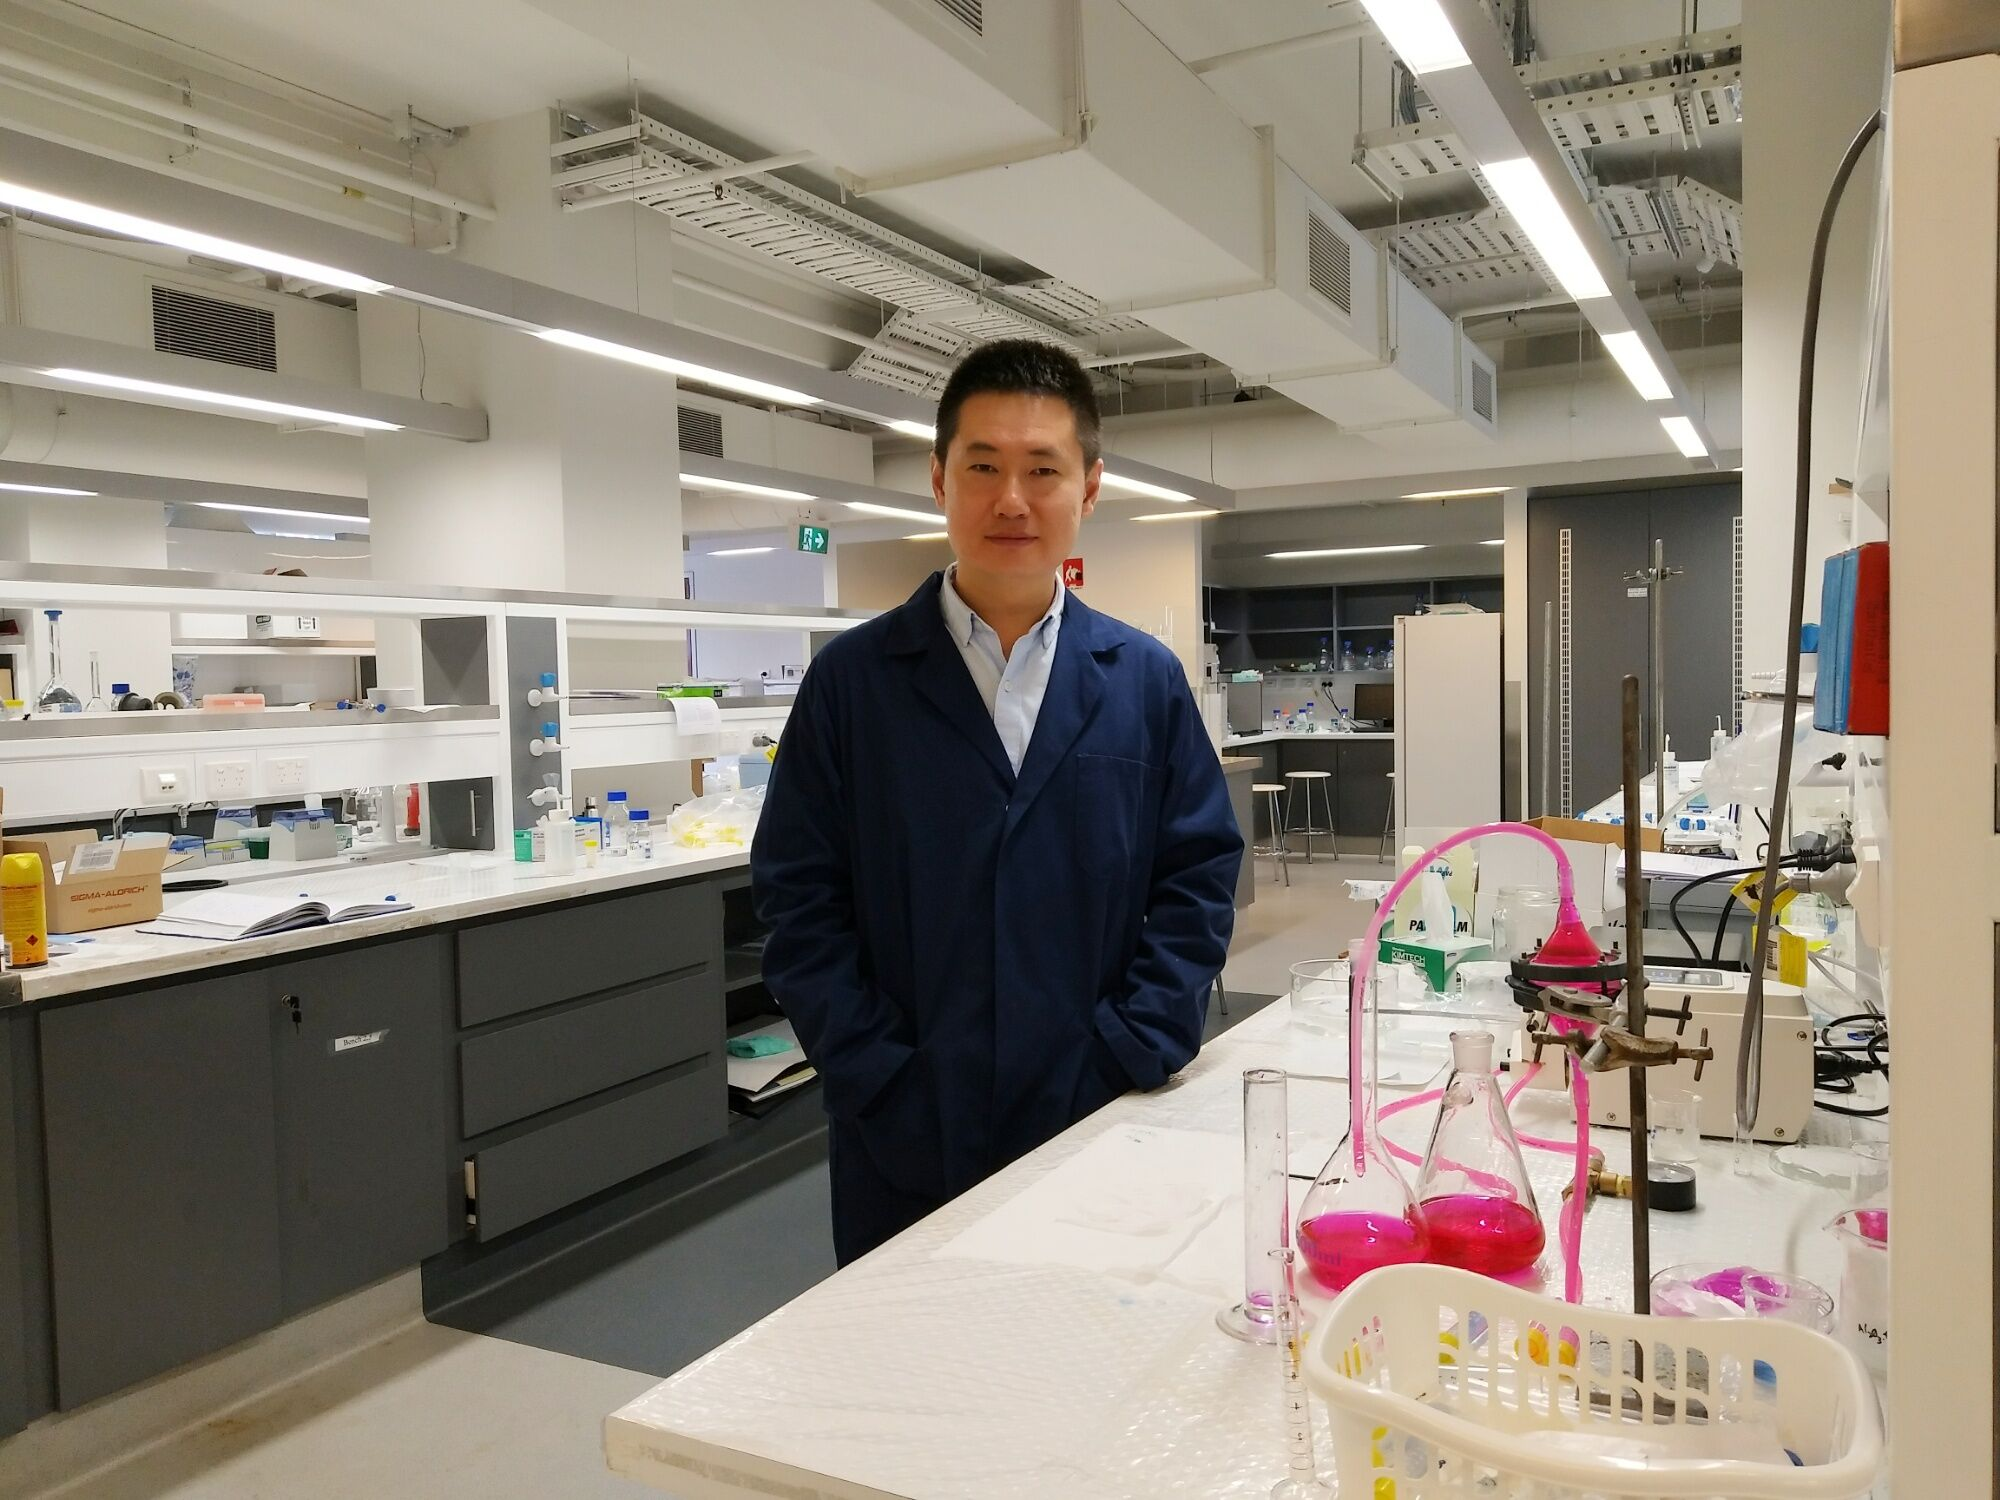 Zheng (Allen) Sun, Ph.D., Associate Professor in Marine Biology